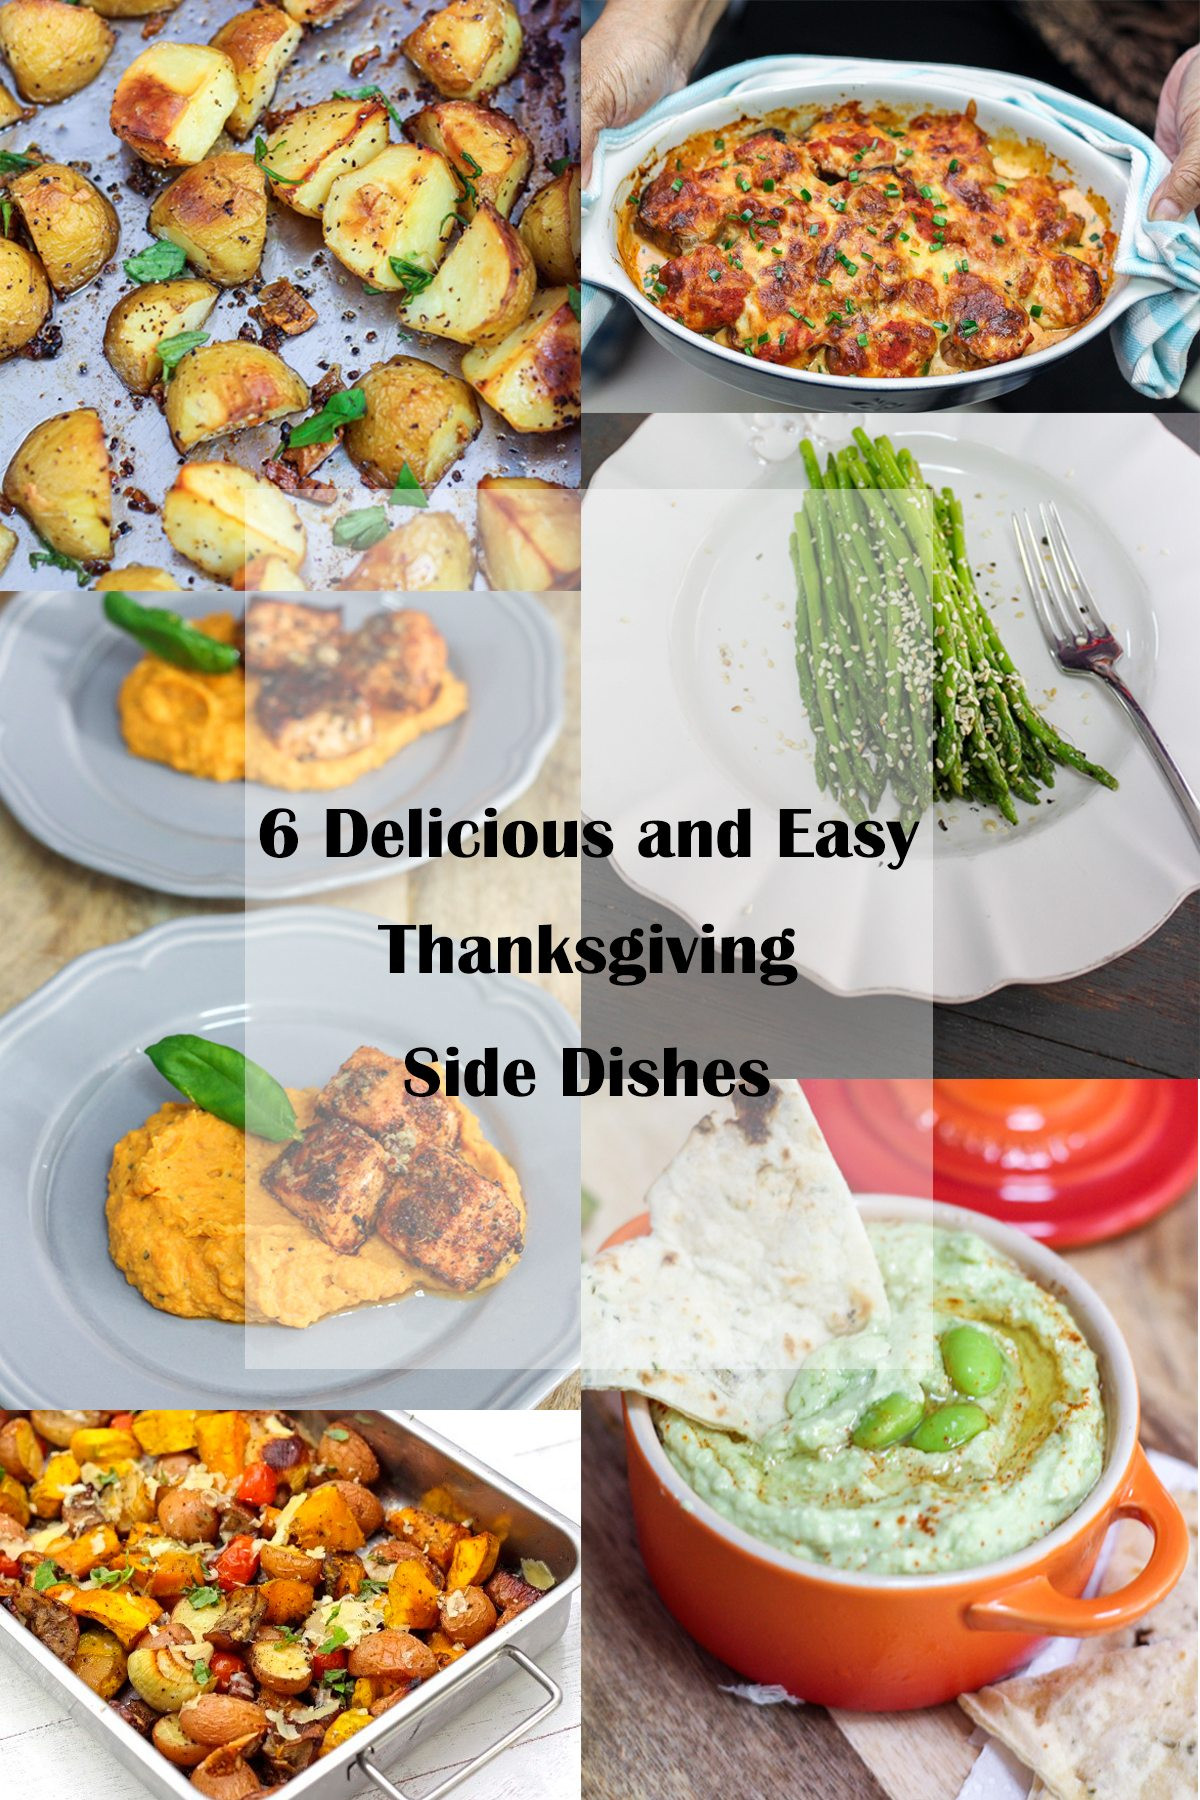 Thanksgiving Easy Side Dishes  6 Delicious and Easy Thanksgiving Side Dishes